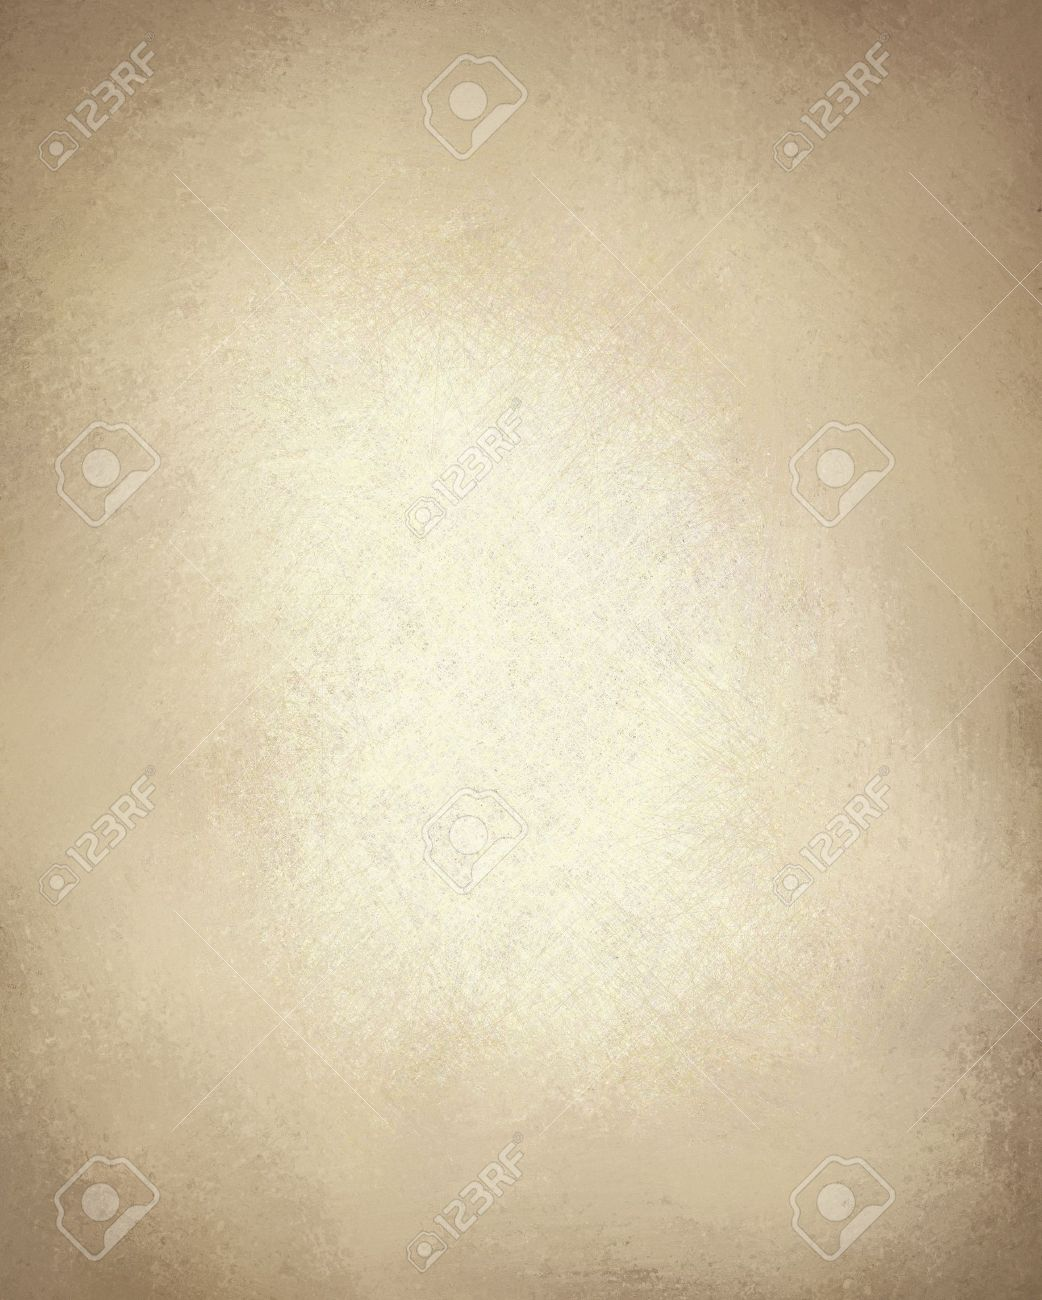 beige or light brown paper background with vintage grunge texture and highlight and old parchment look with copy space Stock Photo - 11588845